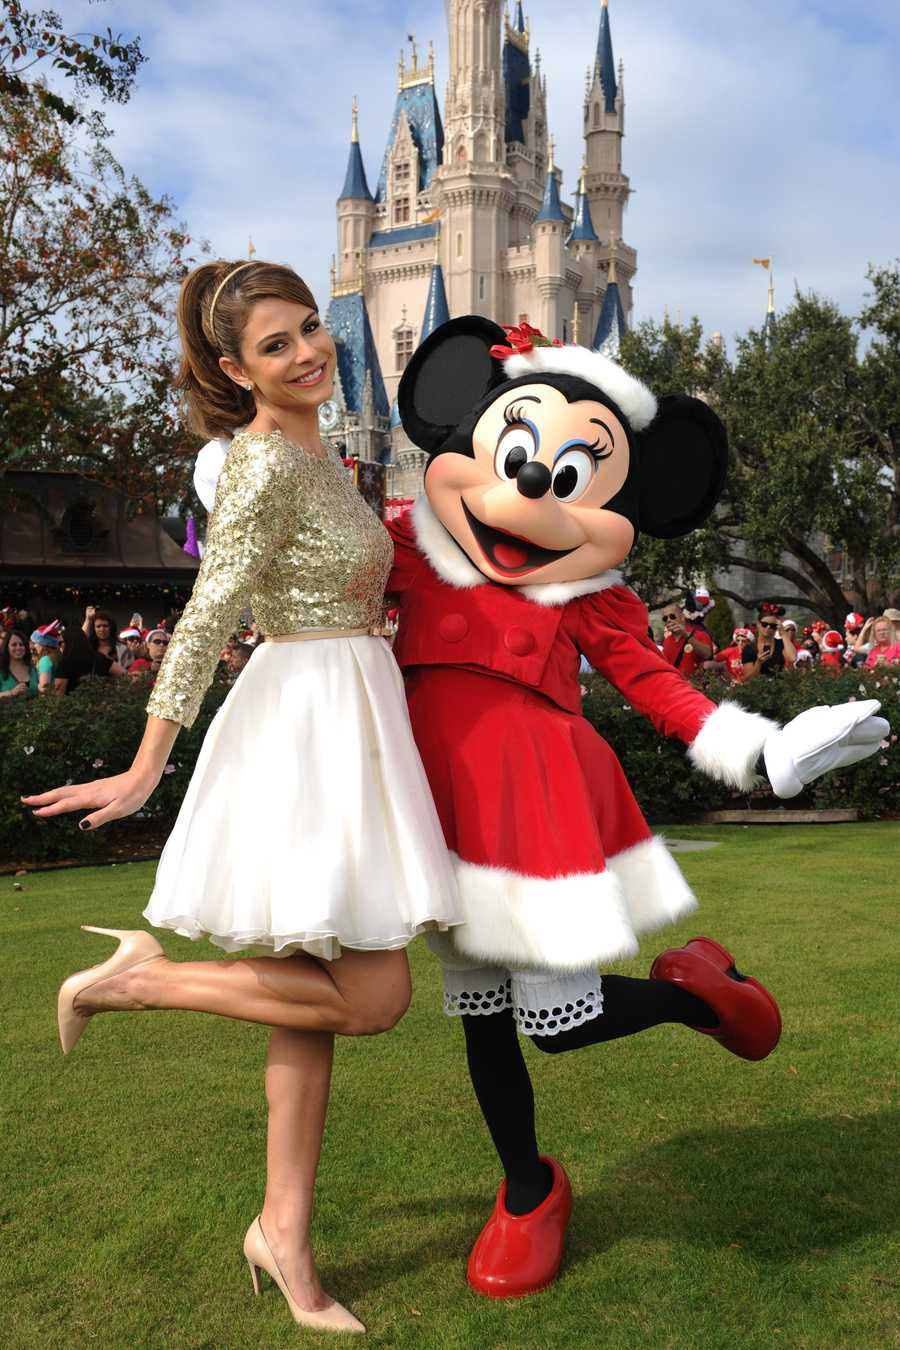 """Actress and entertainment journalist Maria Menounos poses with Minnie Mouse during a break in taping the """"Disney Parks Christmas Day Parade"""" in the Magic Kingdom park at Walt Disney World in Lake Buena Vista, Fla. Menounos is the co-host for the holiday special."""